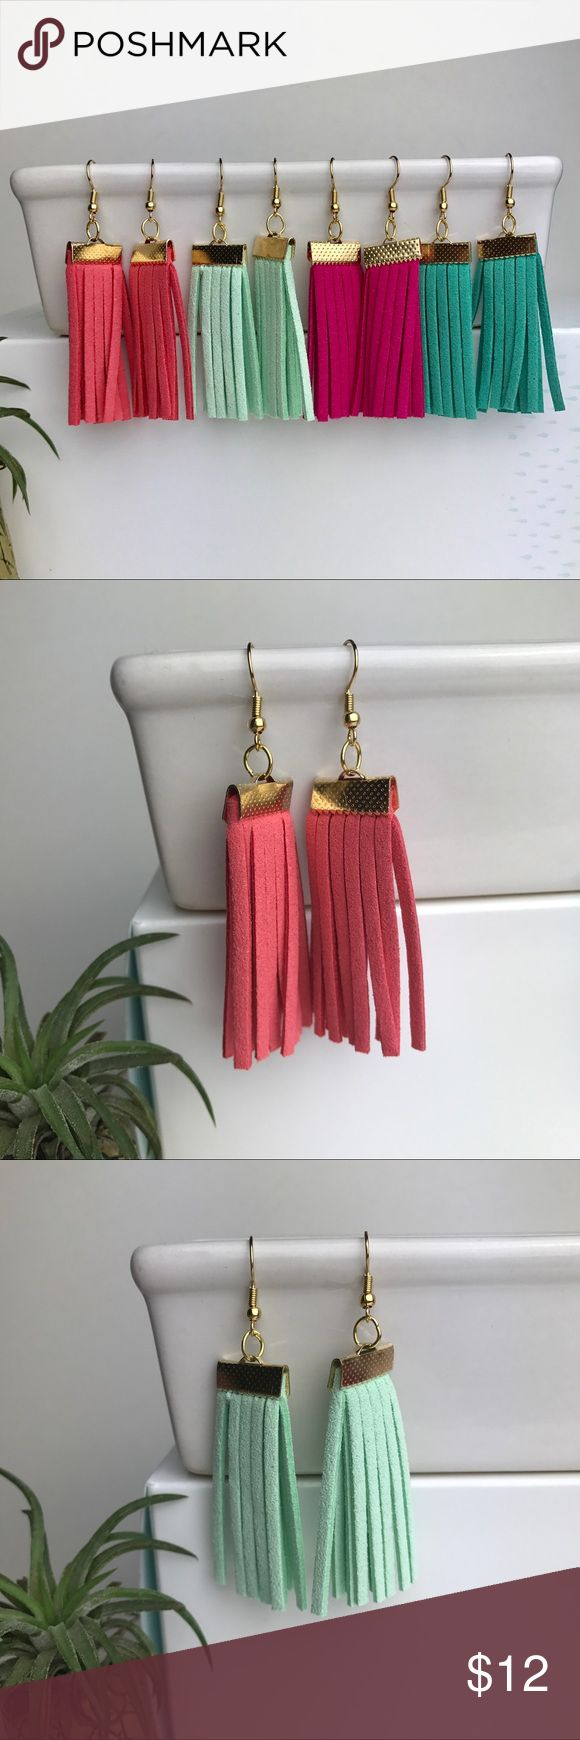 """Fringe Tassel Earrings Fringe Tassel Earrings add a fun, summery hint of color to any outfit. Fishhooks stay in place and are 18K plated gold, Nickel Free. Around 3"""" in total length. Faux Suede. Bundle to save 20% off! No trades. Arrive to you attached to a card in a mini cloth jewelry bag. Jewelry Earrings"""